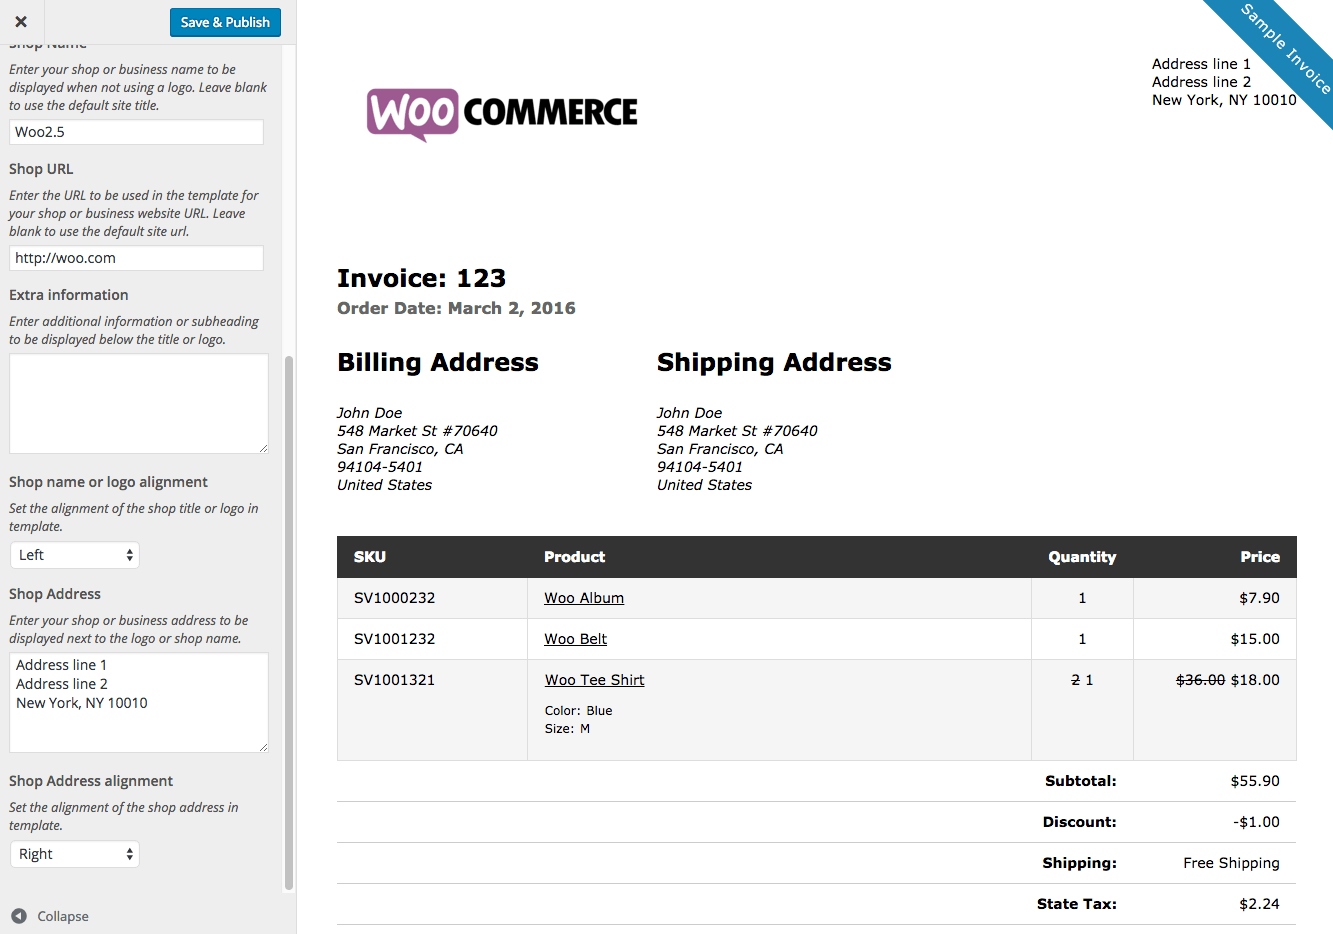 Occupyhistoryus  Unique Print Invoices Amp Packing Lists  Woocommerce With Heavenly Woocommerce Print Invoices  Packing Lists Customizer With Lovely Sample Of An Invoice Template Also Template For Invoice Free In Addition Download Free Invoice Template For Word And Invoice Generation Software As Well As Invoice For Customs Purposes Only Additionally Supplier Invoices From Woocommercecom With Occupyhistoryus  Heavenly Print Invoices Amp Packing Lists  Woocommerce With Lovely Woocommerce Print Invoices  Packing Lists Customizer And Unique Sample Of An Invoice Template Also Template For Invoice Free In Addition Download Free Invoice Template For Word From Woocommercecom